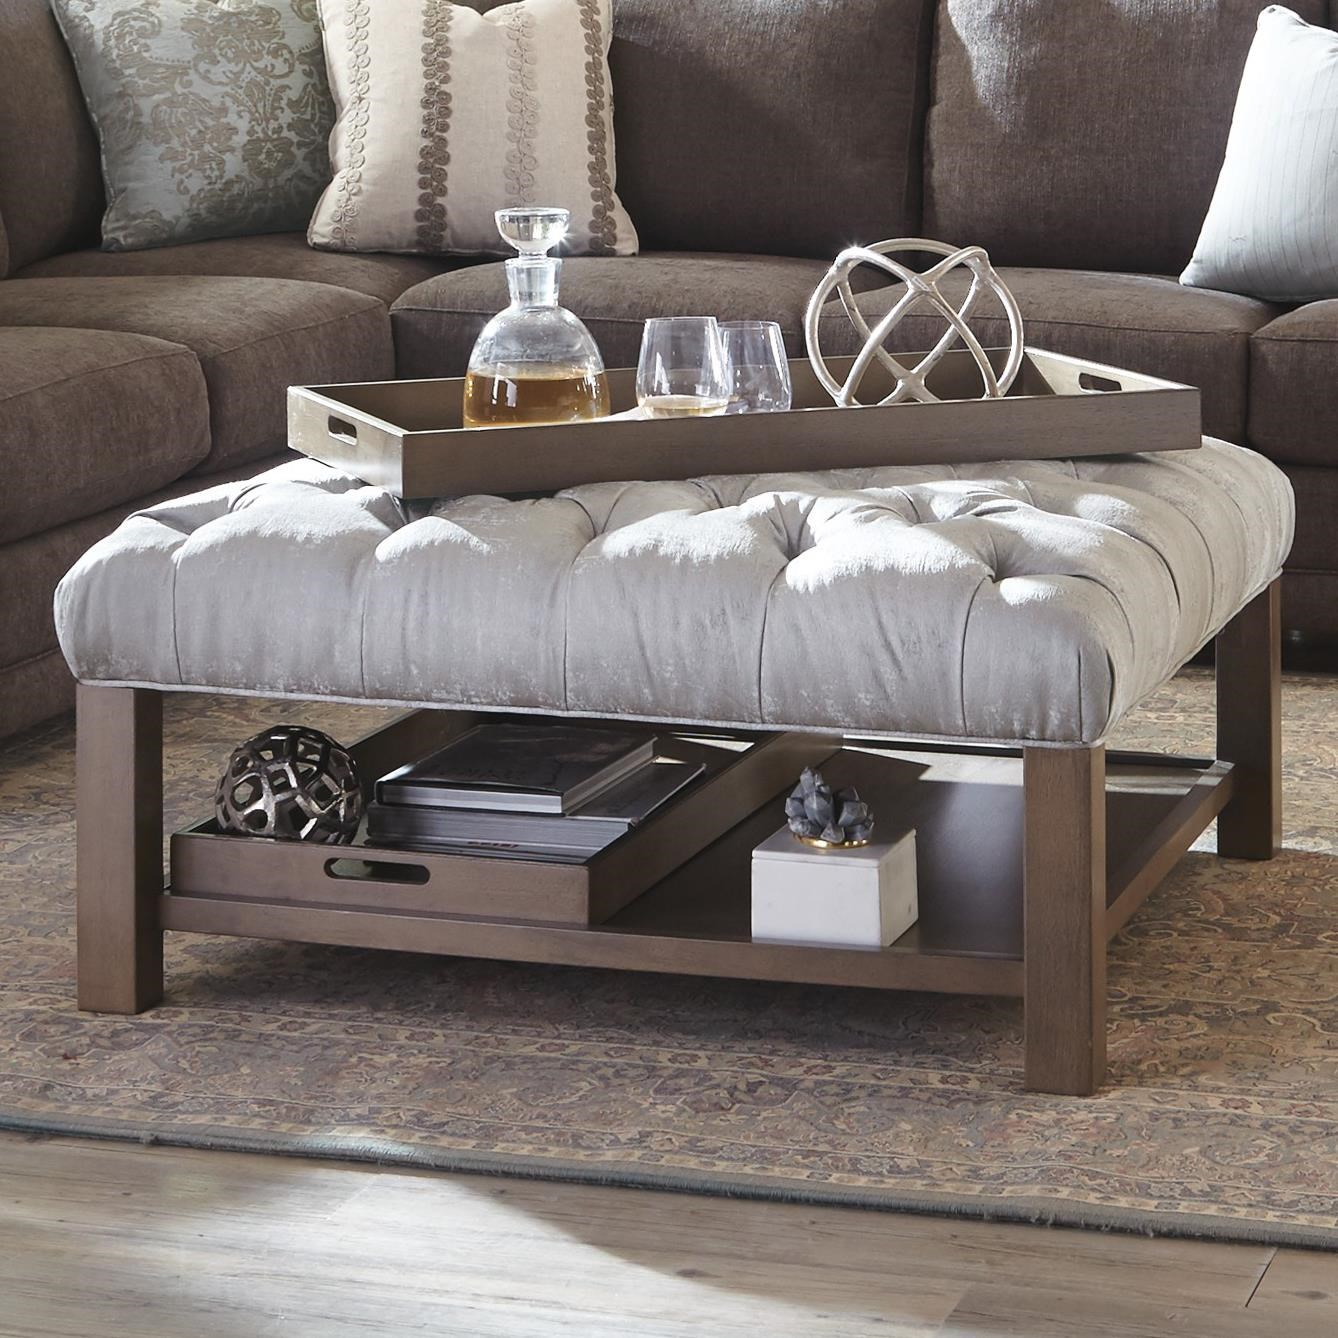 craftmaster living room furniture new interior designs for accent ottomans cocktail ottoman with button ...